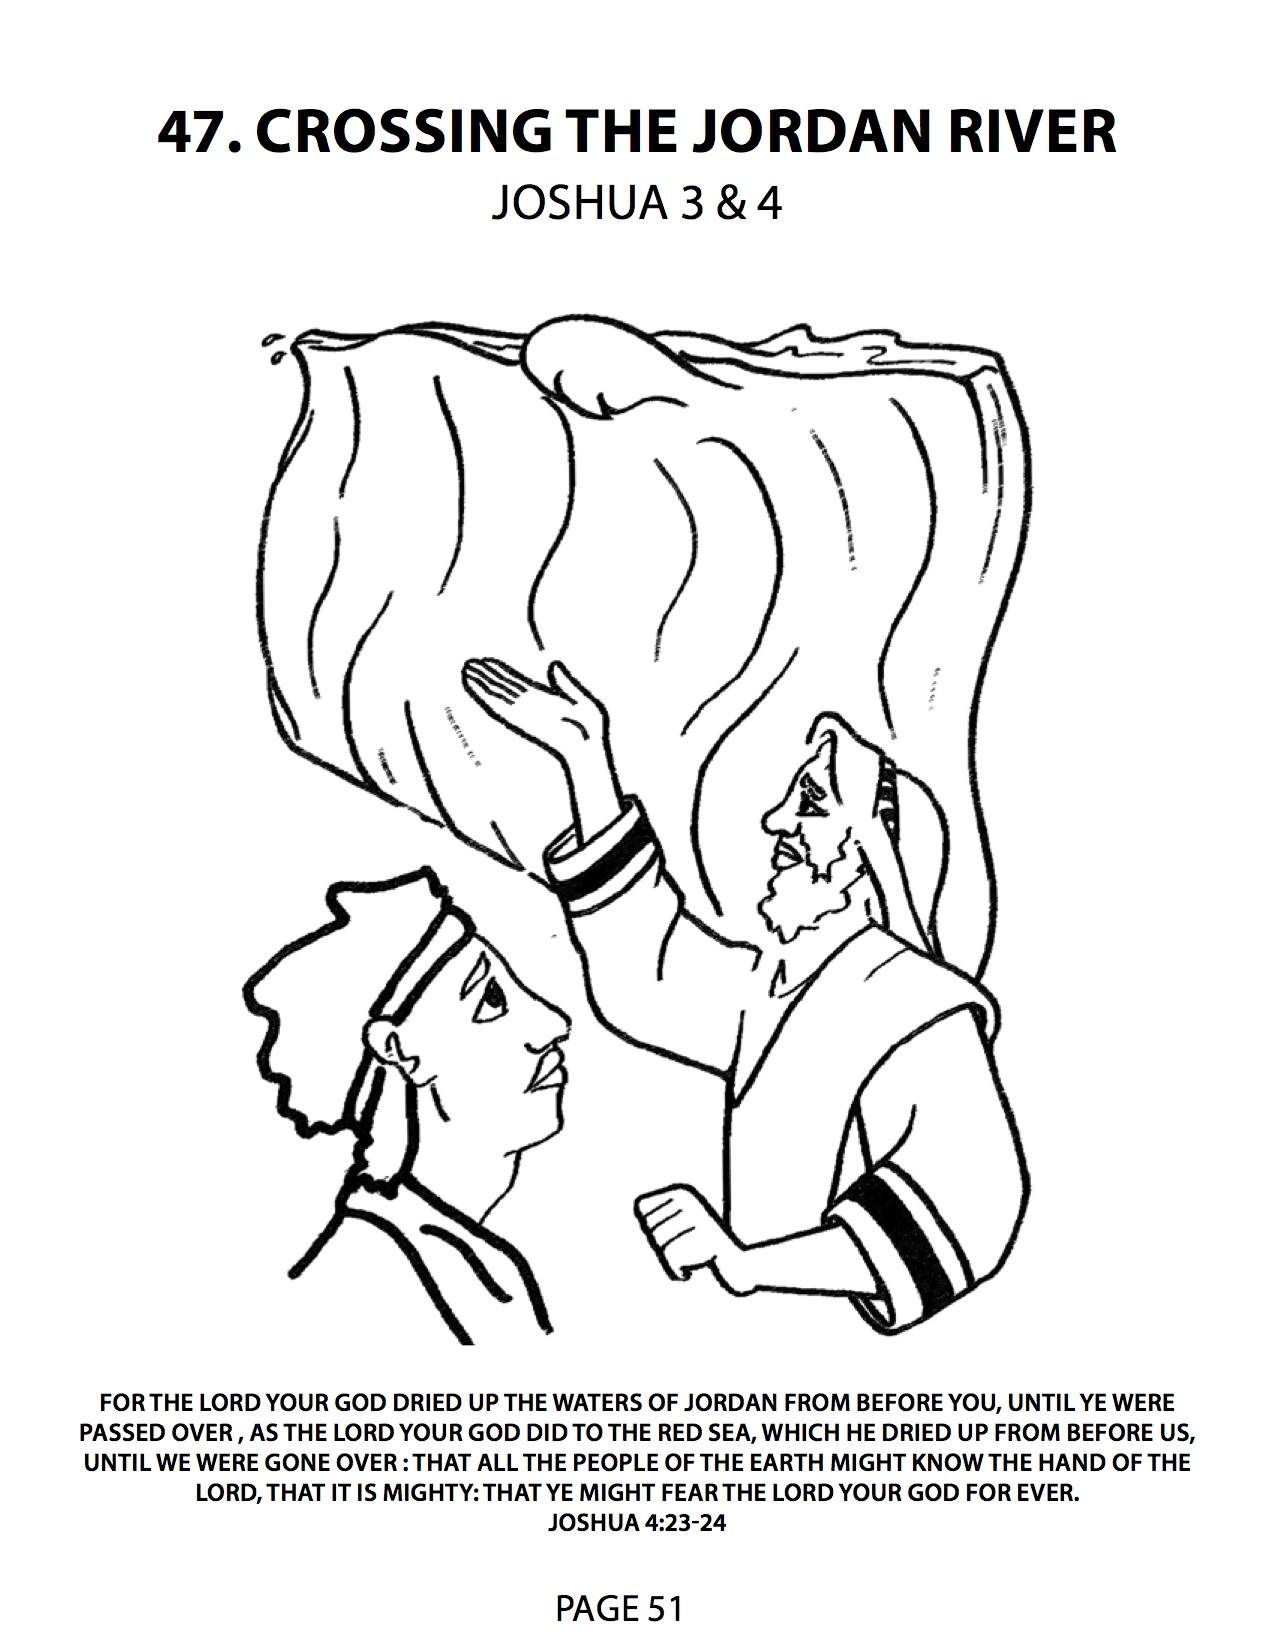 Adult Beauty Rahab Coloring Page Gallery Images best rahab coloring pages now joshua crossing jordan river page of images